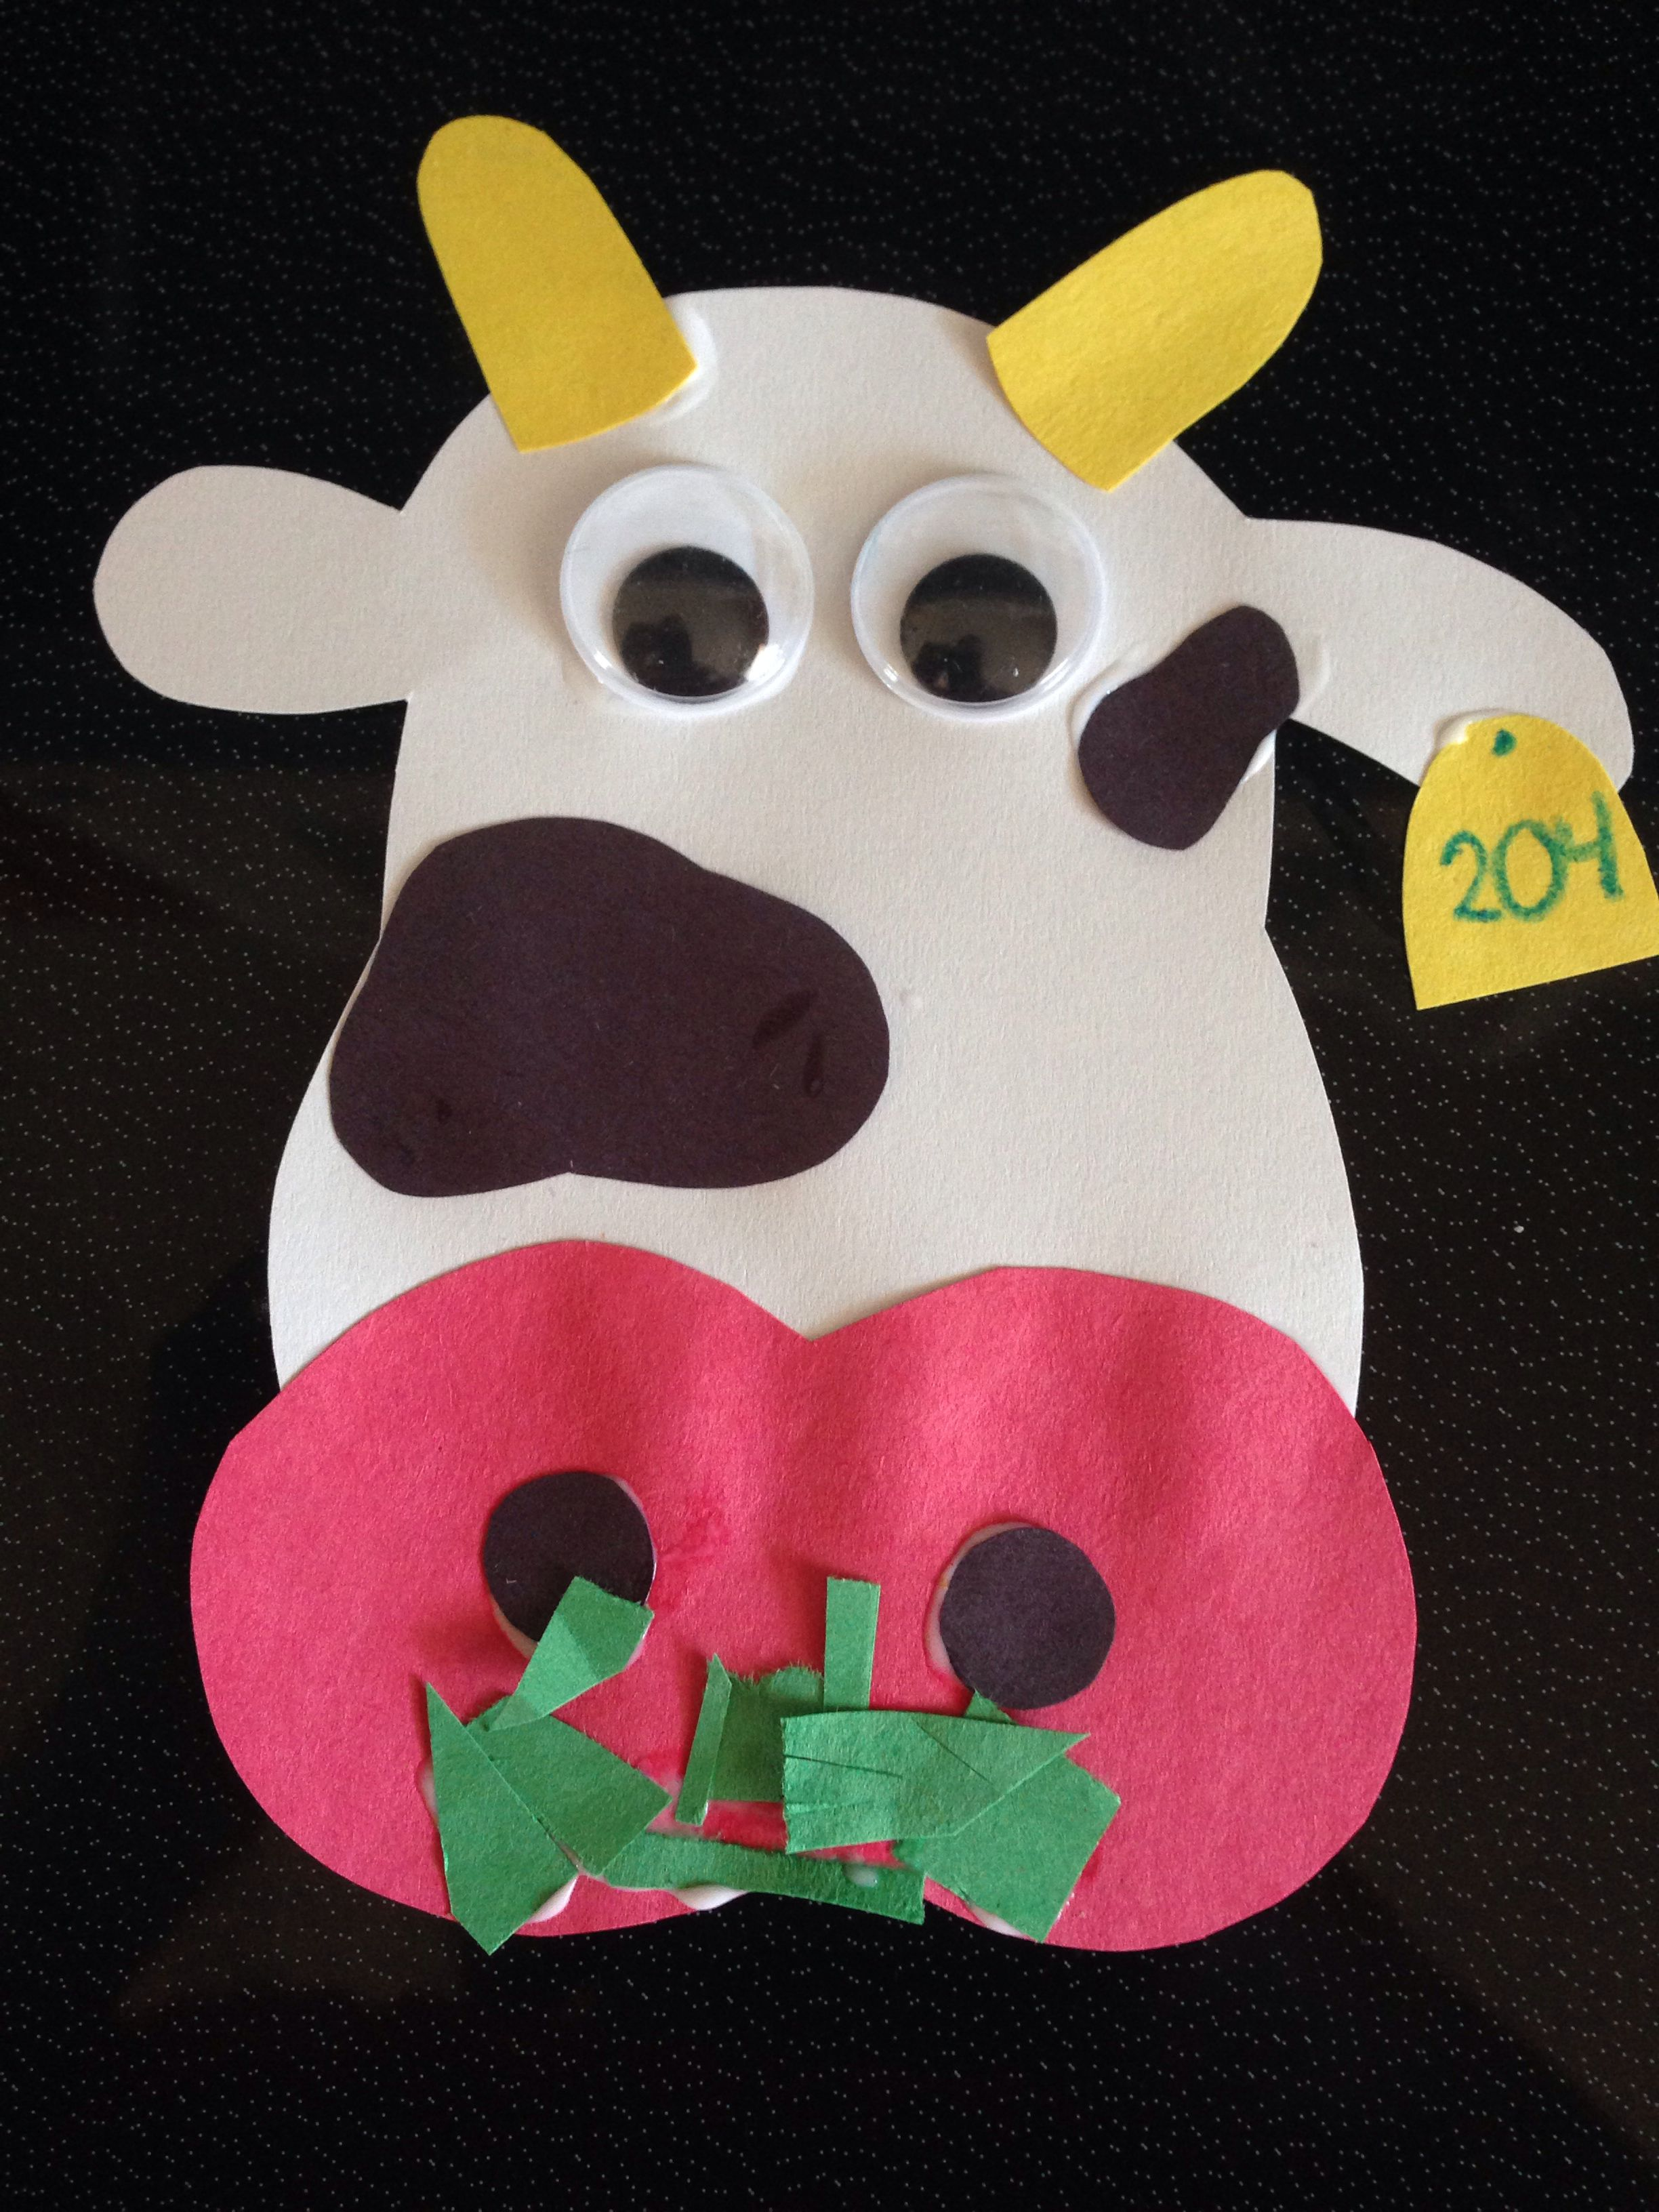 Construction Paper Cow Craft Cow Craft Kids Construction Paper Construction Paper Crafts [ 3264 x 2448 Pixel ]